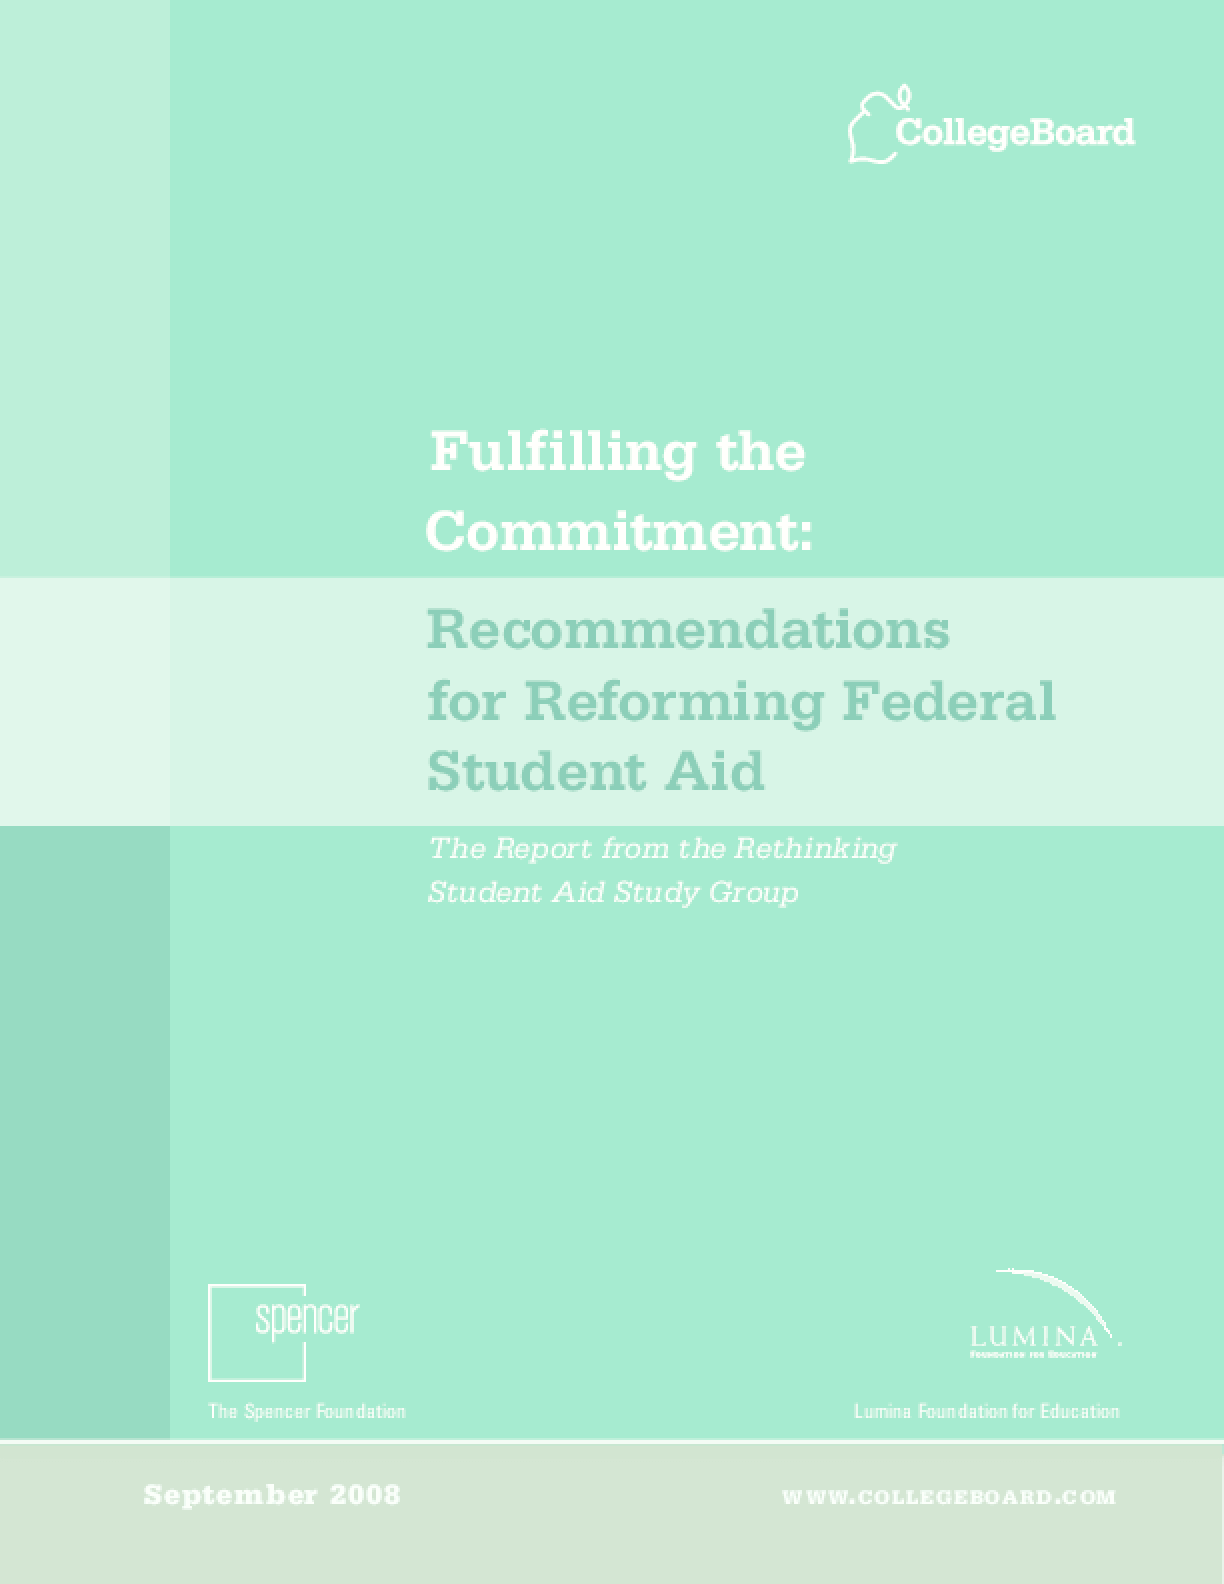 Fulfilling the Commitment: Recommendations for Reforming Federal Student Aid